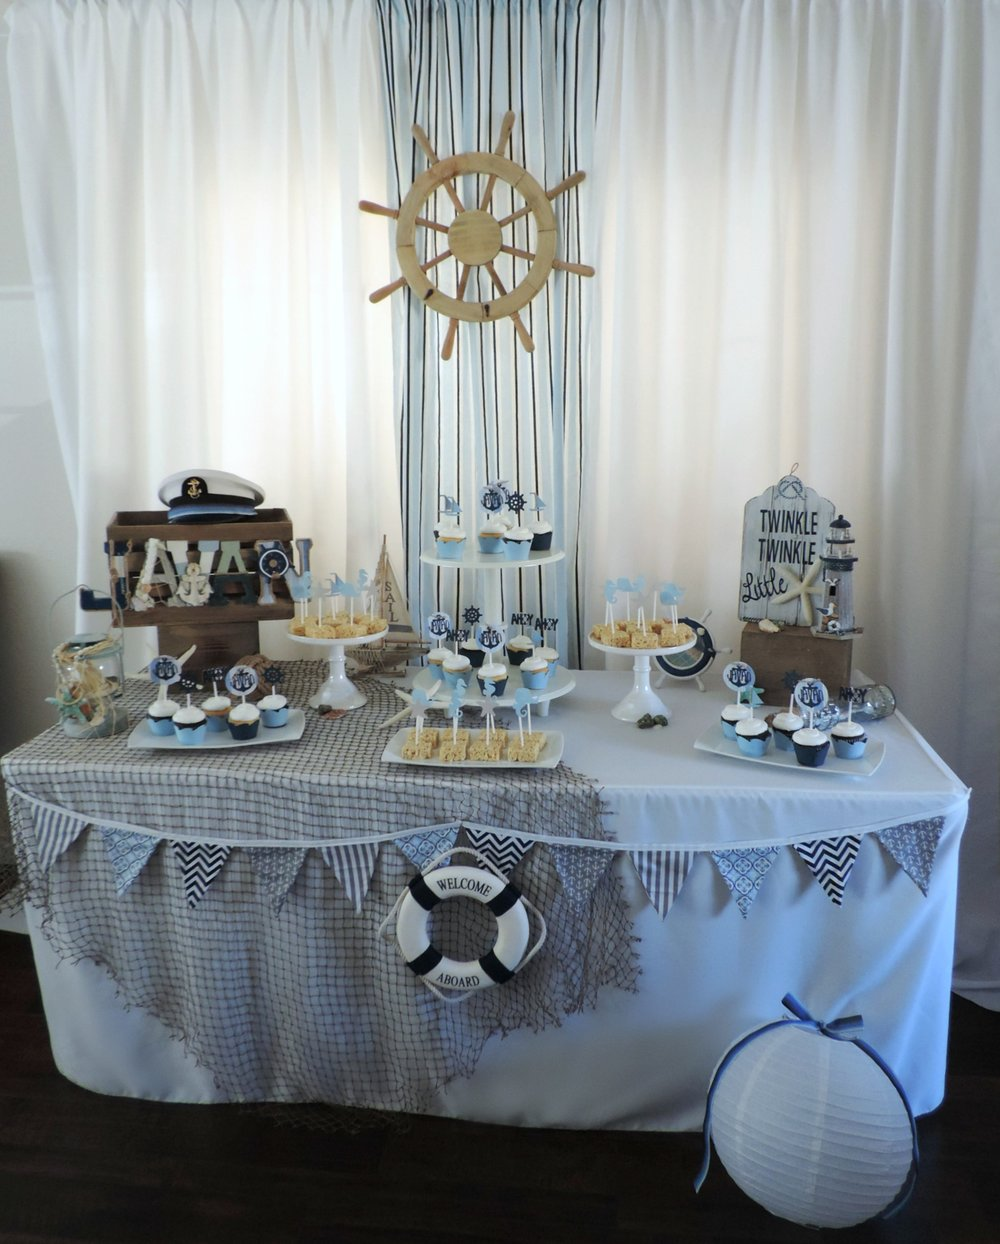 Ahoy Its a Boy baby shower-boy baby shower-beachy baby shower-baby shower dessert table-nautical baby shower-boy baby shower ideas-www.SugarPartiesLA.com.jpg